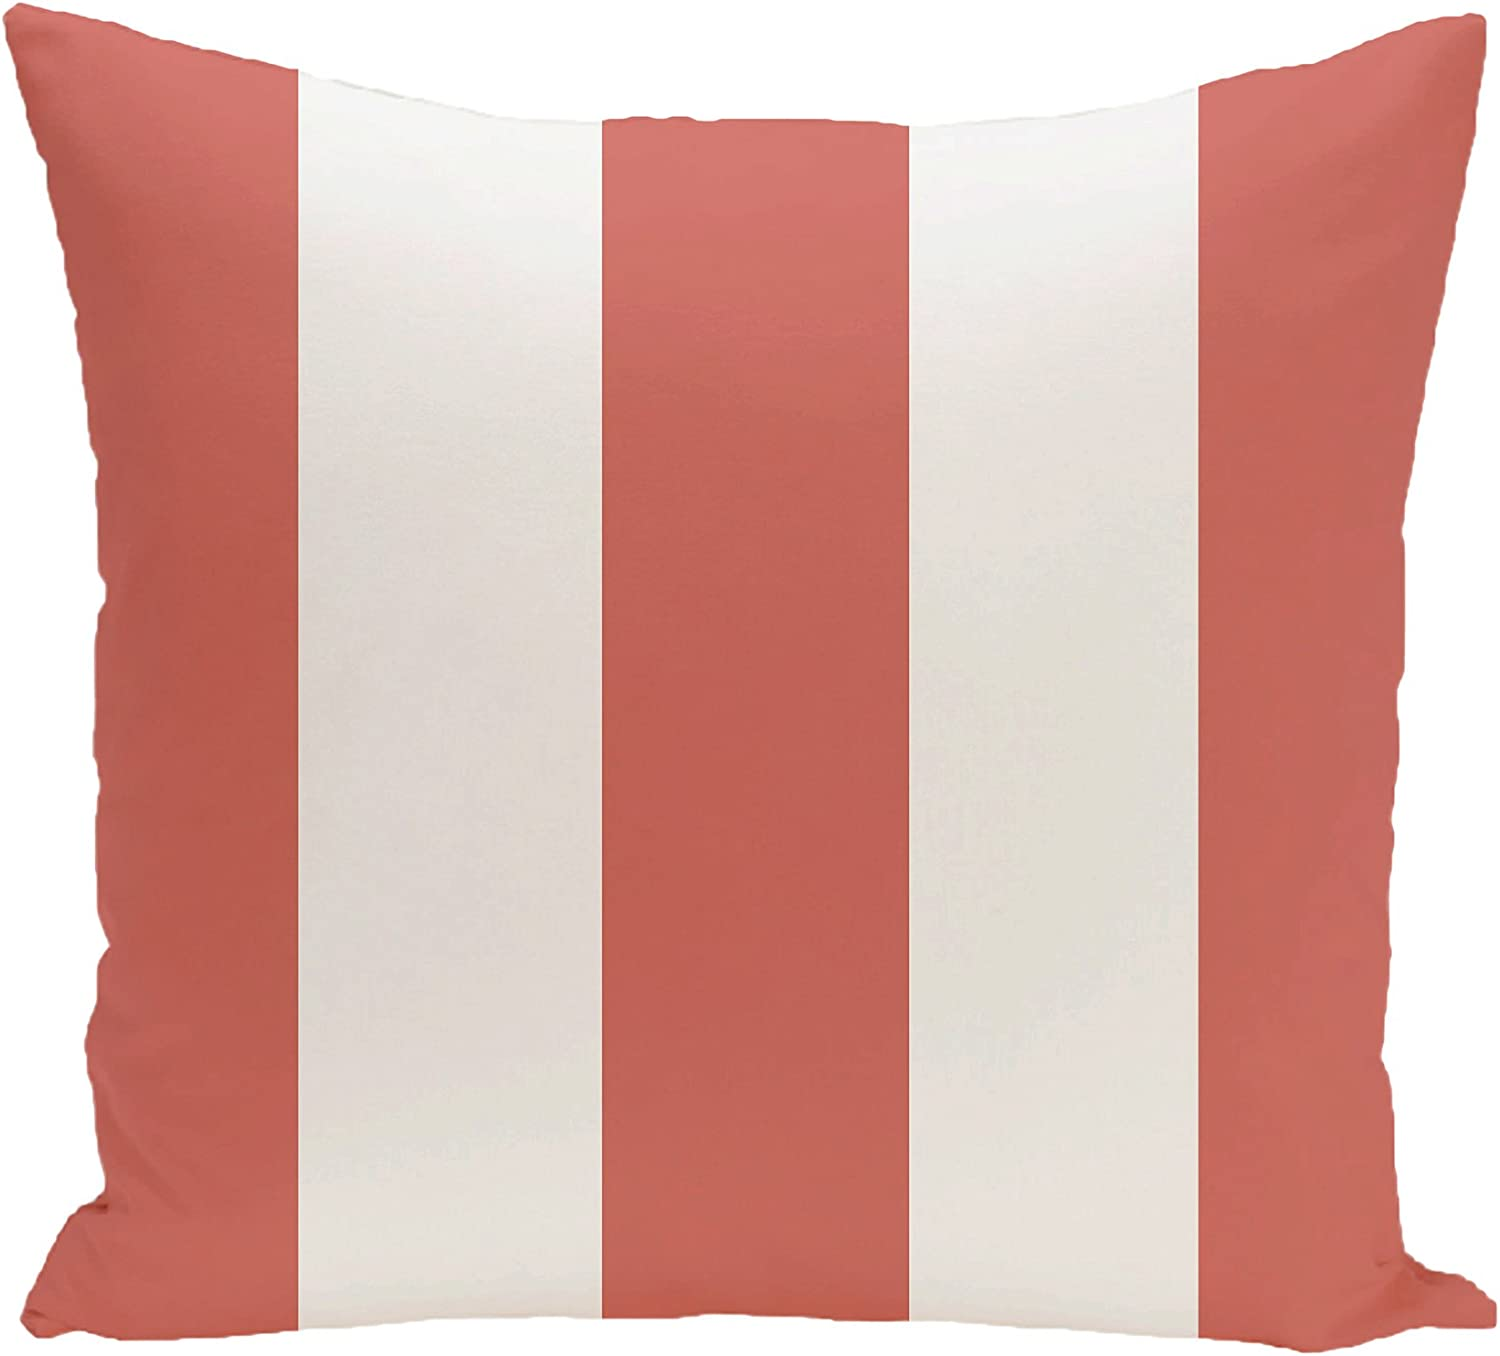 Seed E by design Awning Stripe Print Pillow 18-Inch Length